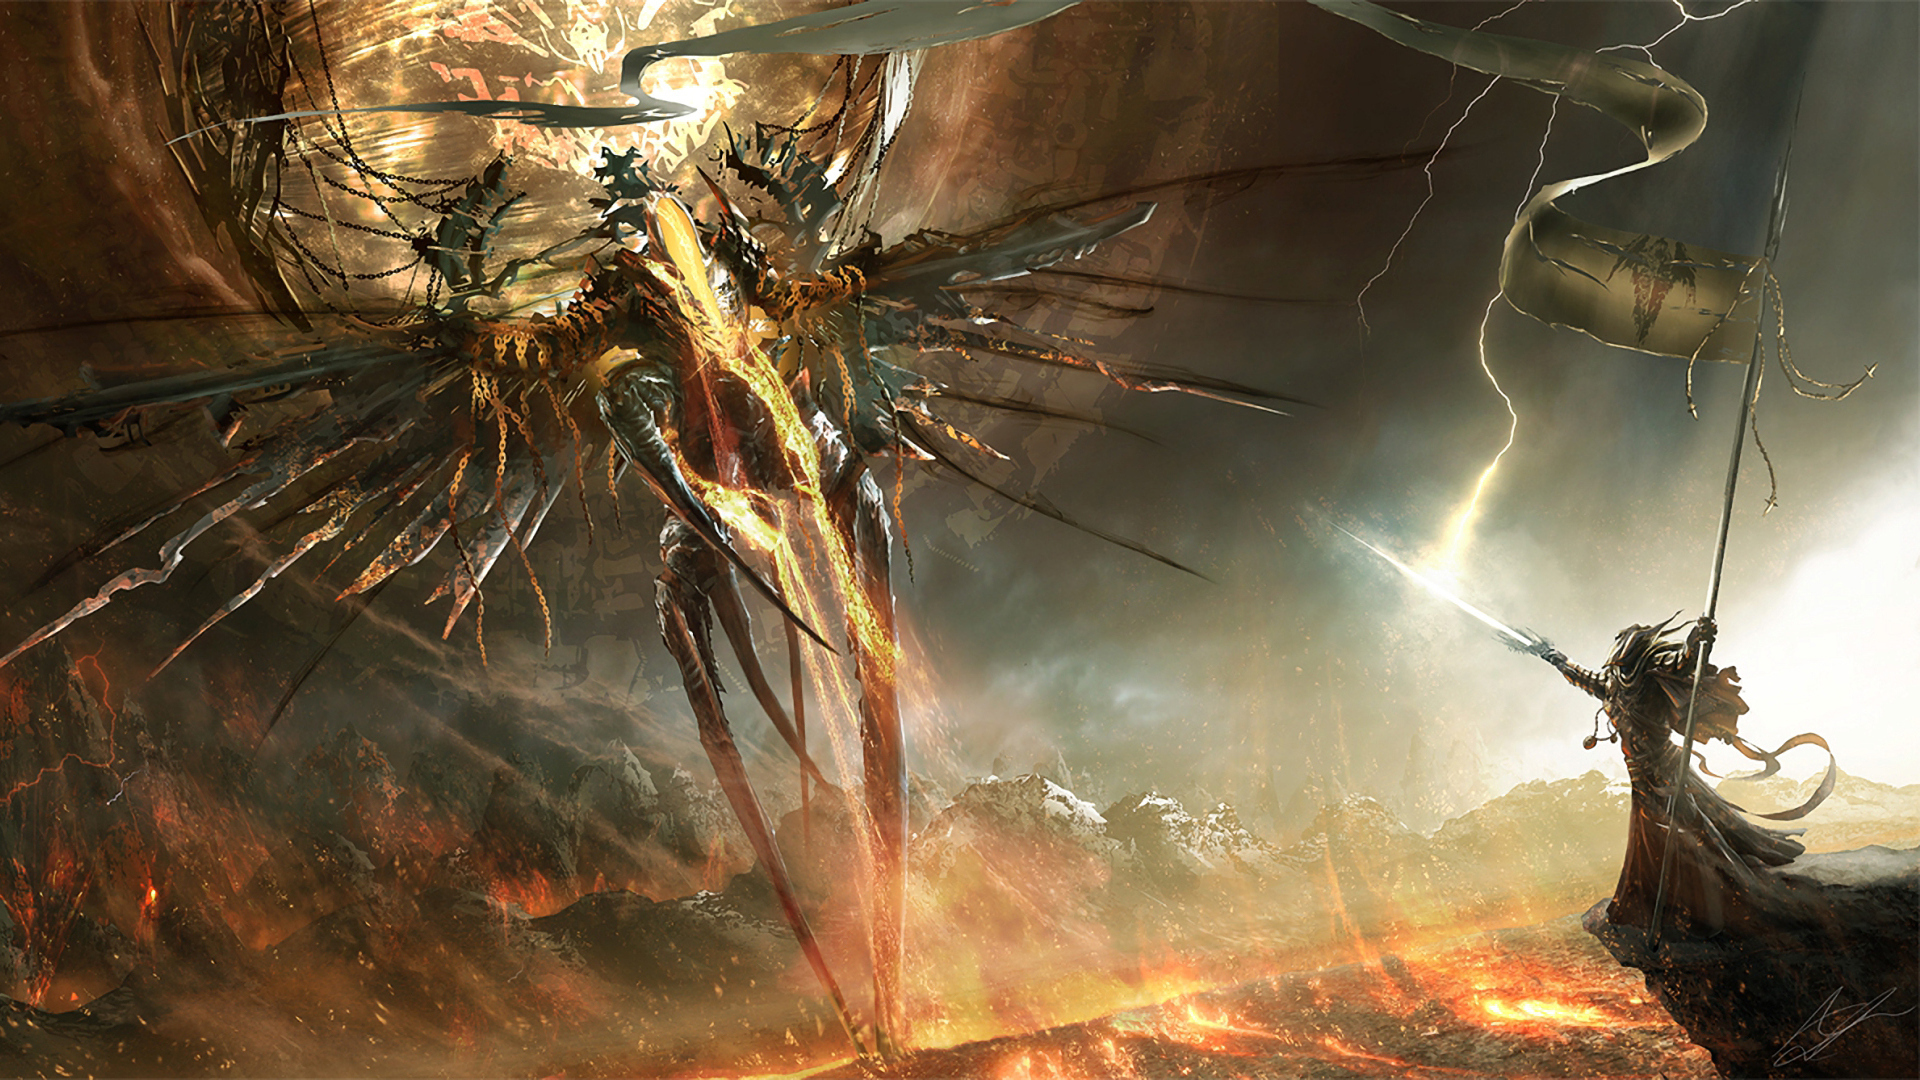 battle with the inner demons in ancient epic narratives essay Trinity #7 begins with ra's exploring the ruins of an ancient characters' inner demons trinity, the stage is set for an epic confrontation.